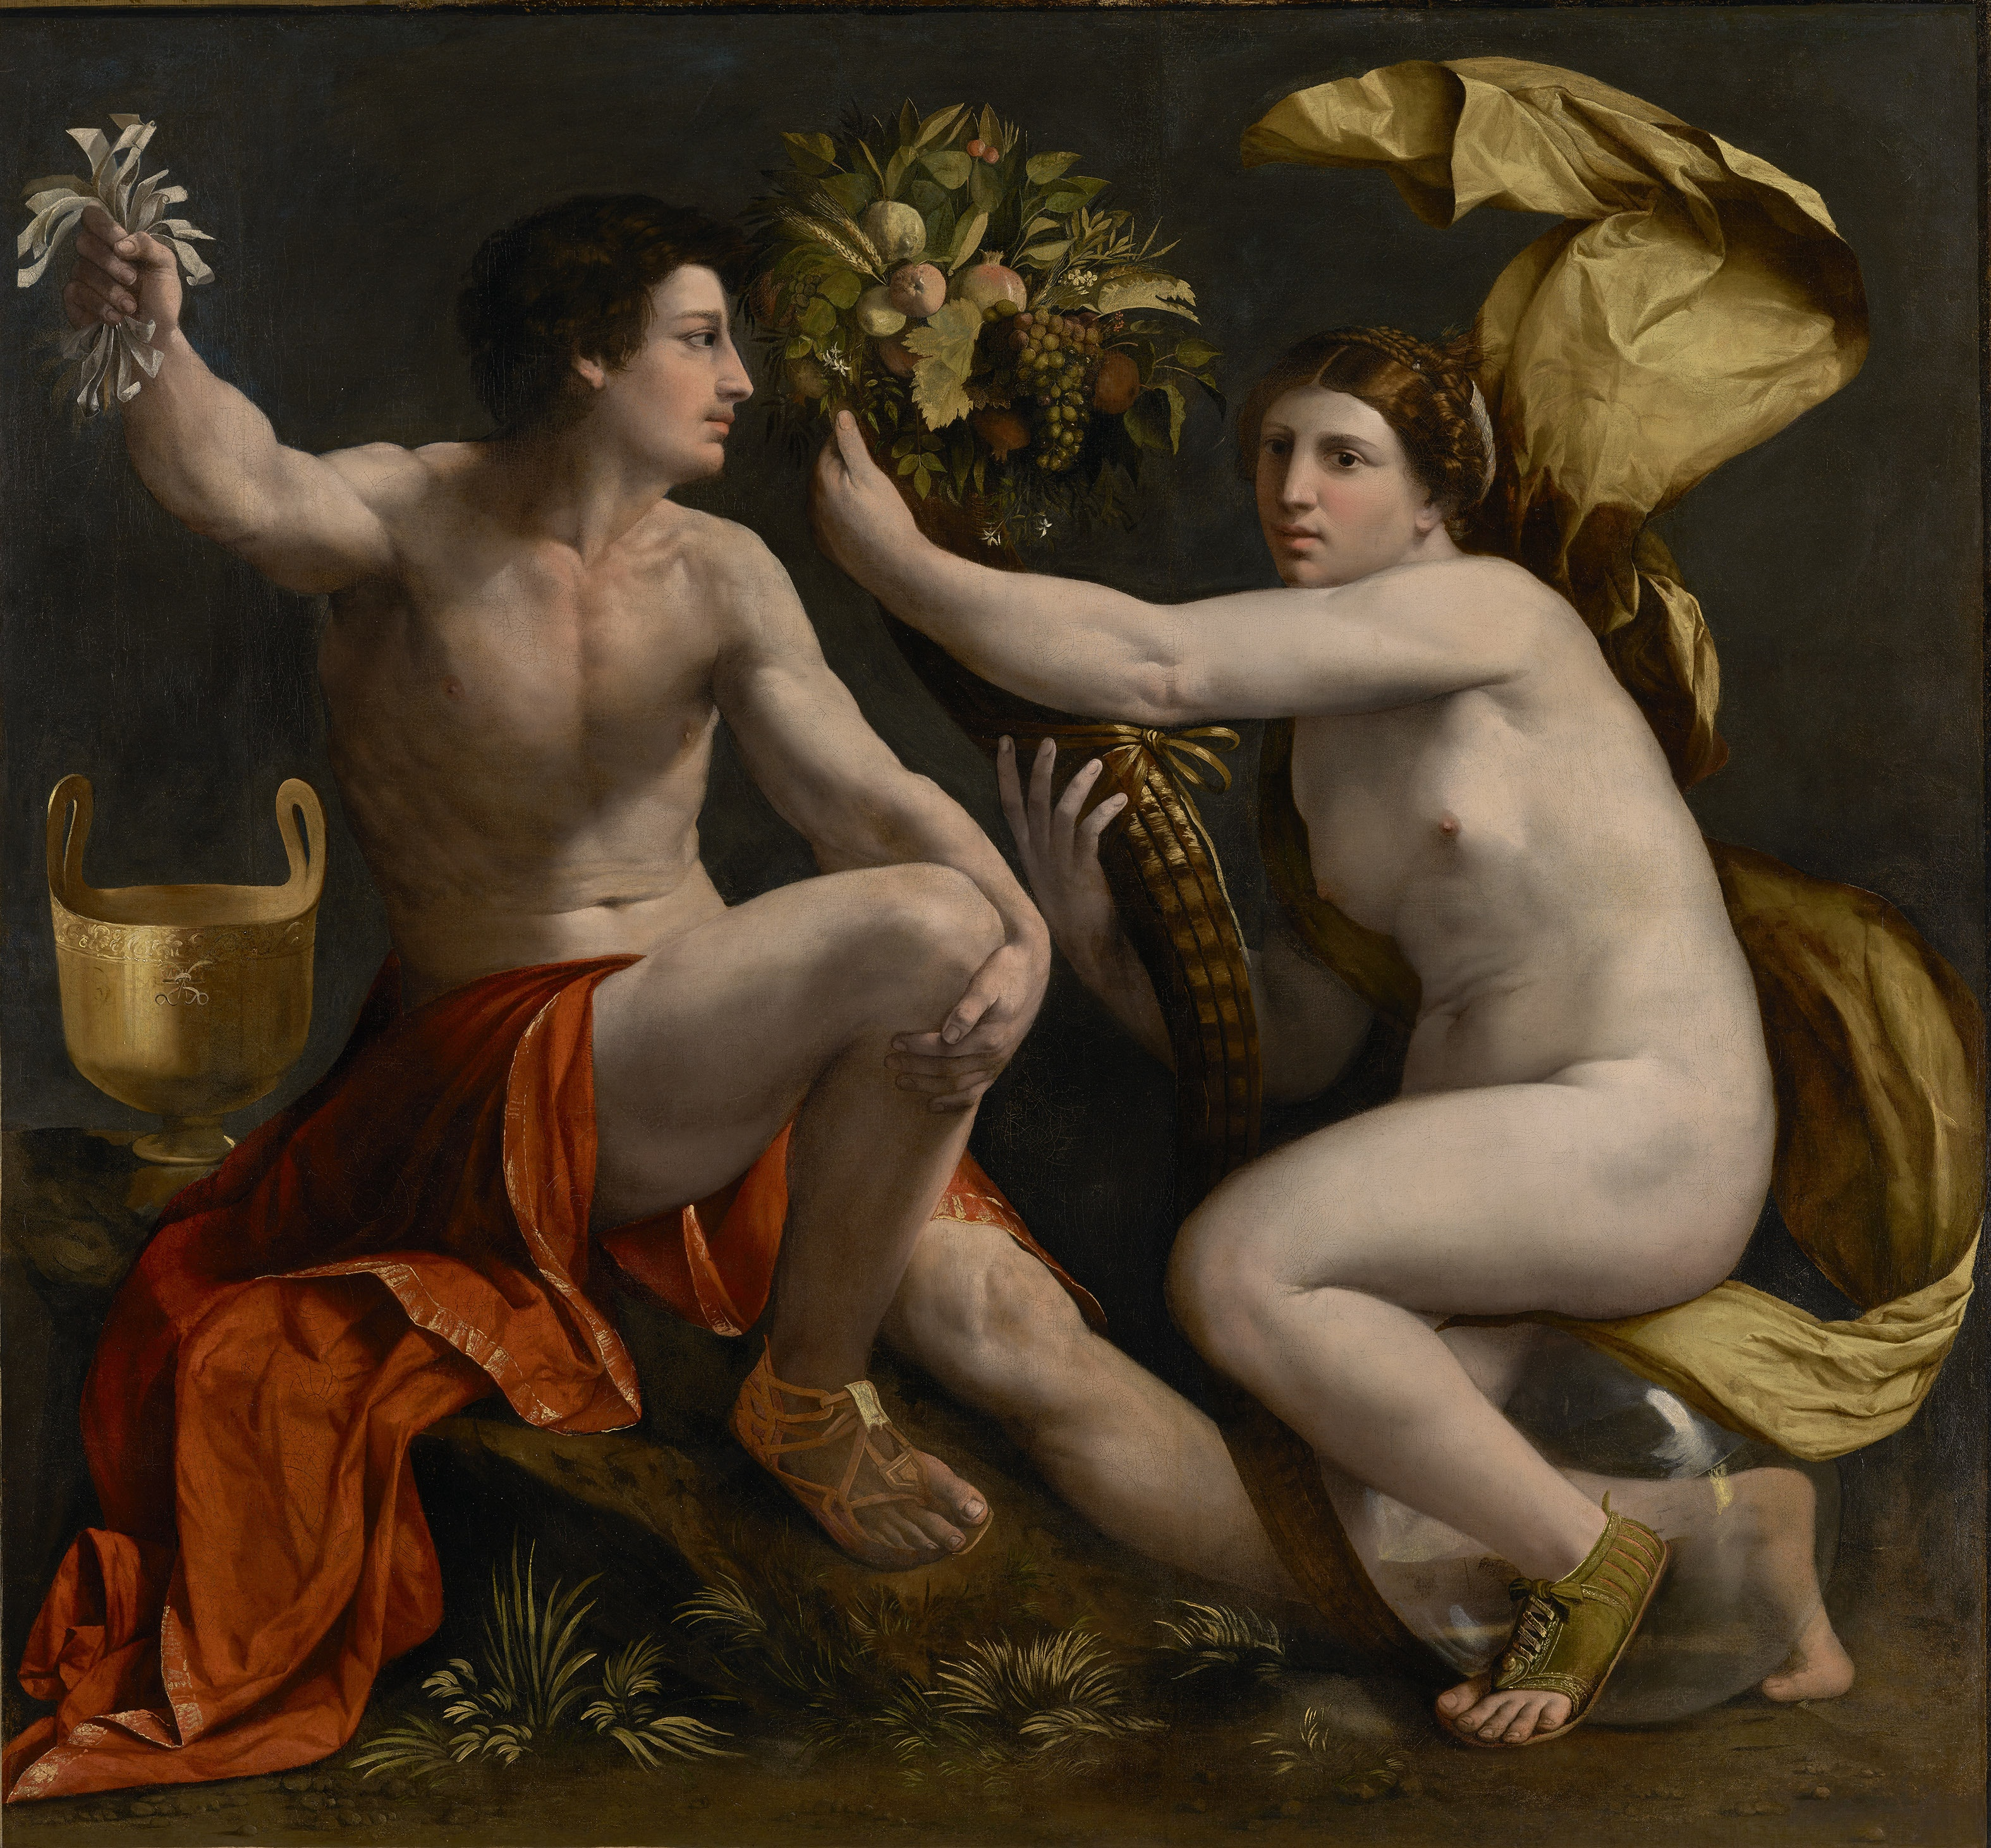 Dosso Dossi, Allegory of Fortune, c. 1530, Oil on canvas, 179.1 x 217.2 cm. The J. Paul Getty Museum, Los Angeles. Digital image courtesy of the Getty's Open Content Program